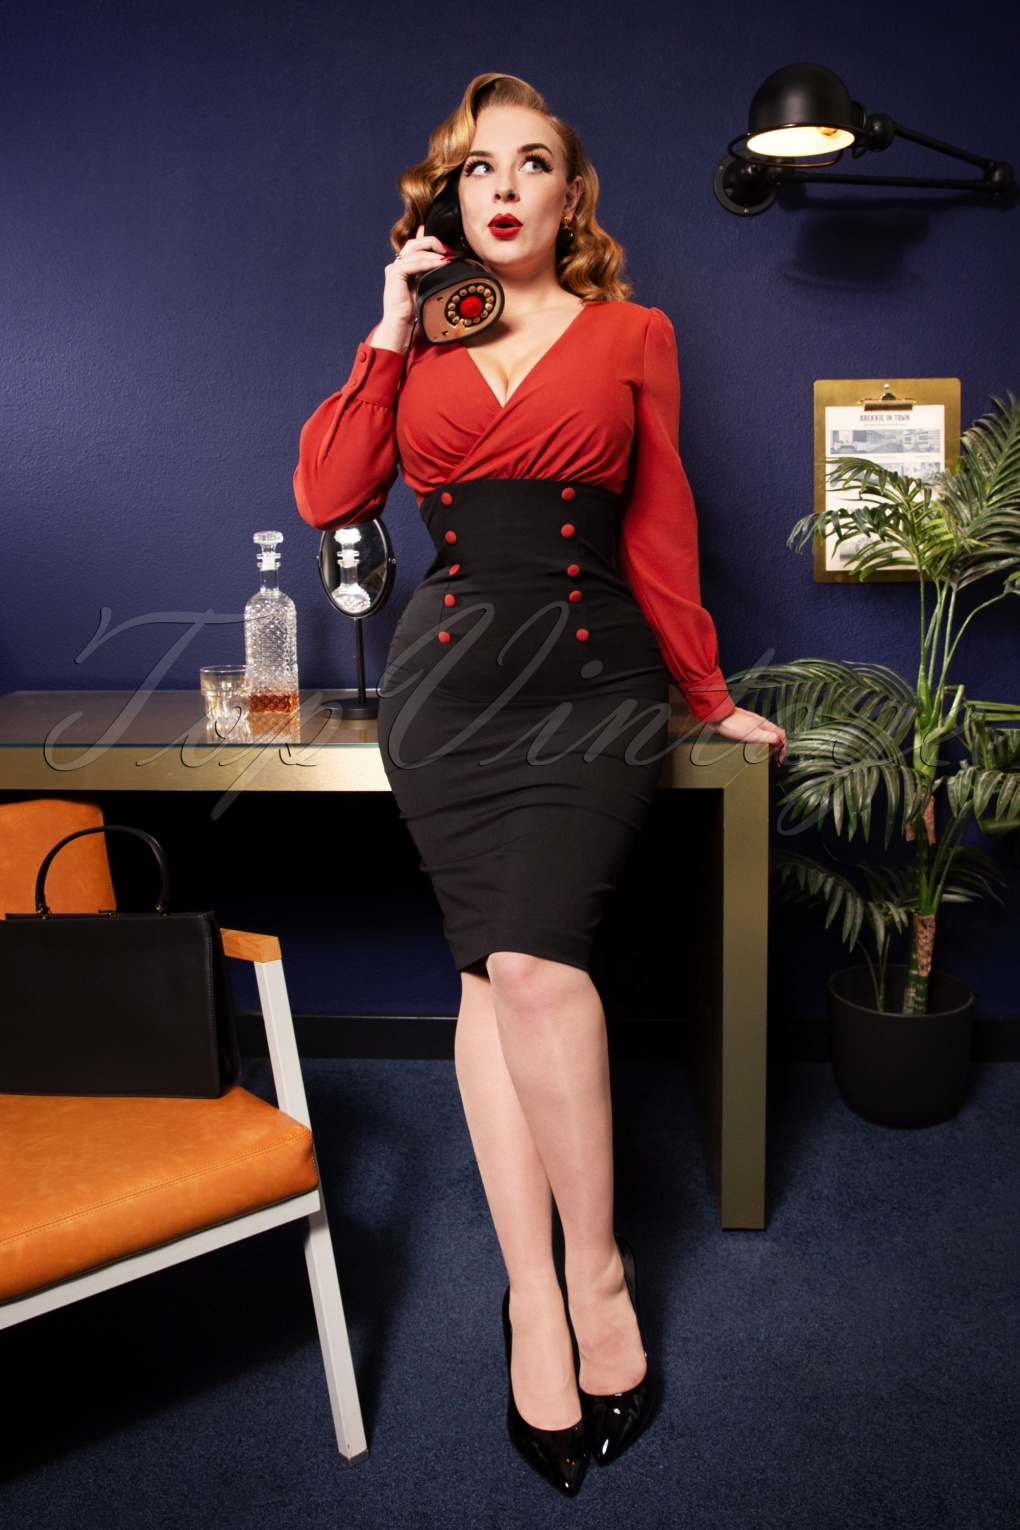 Wiggle Dresses | Pencil Dresses 40s, 50s, 60s 50s Alicia Pencil Dress in Rusty Red and Black £108.16 AT vintagedancer.com